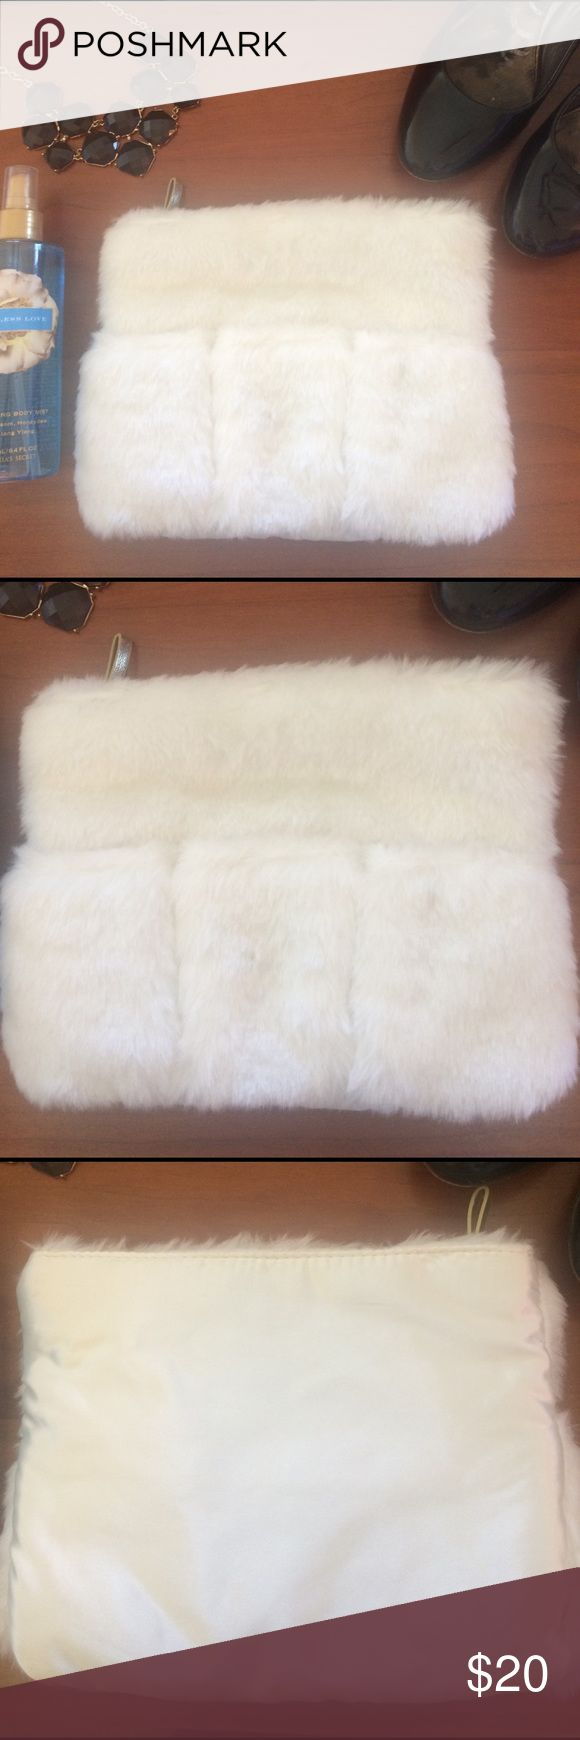 🆕Victoria's Secret Fur White Clutch Bag Beauty Brand New Victoria's Secret Beauty Faux Fur Clutch Makeup Bag Purse White color Has three pouches on front (were supposed to put body spray or lotions but you can put whatever in them) Gold Detail  Zipper top Inside & back are a stain material   Please ask any questions  💲Open To Offers💲 🚫No Trades🚫 📦Ask About Bundle Discounts💰 Victoria's Secret Bags Clutches & Wristlets